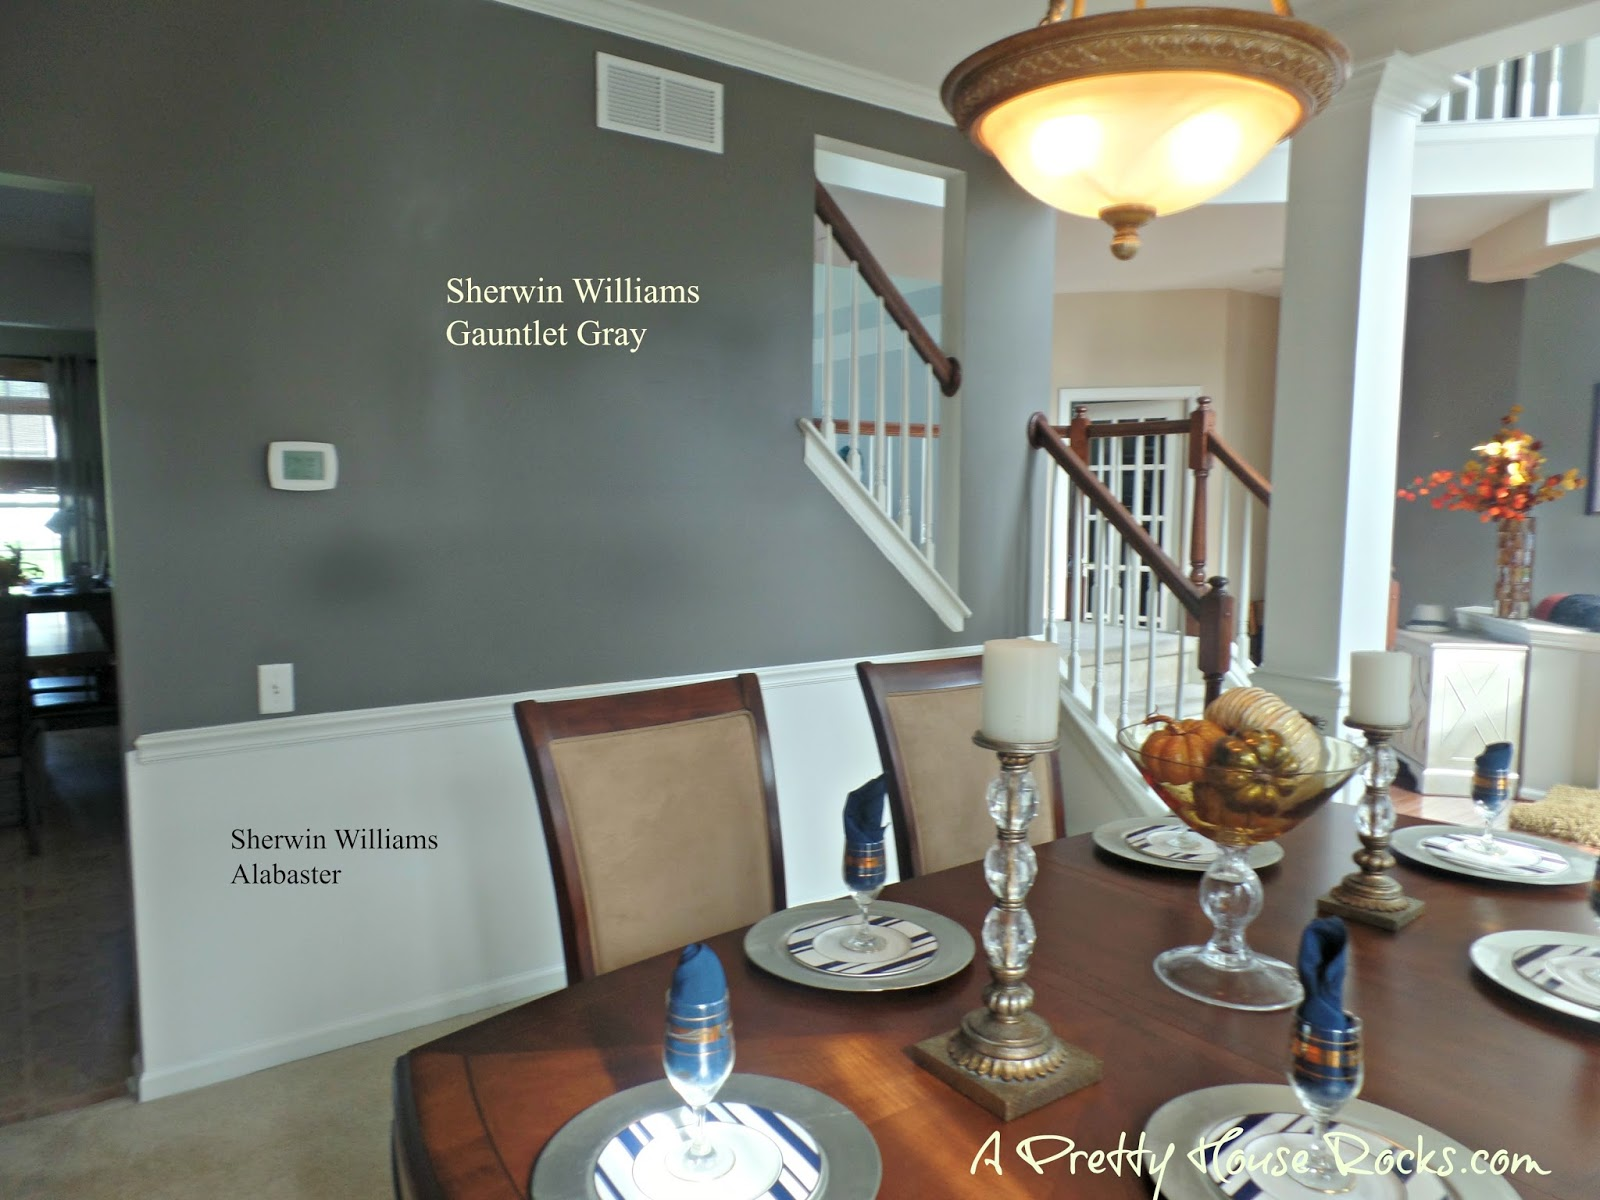 I Fell In Love With Sherwin Williams Gauntlet Gray Above Chair Rail And Alabaster Below These Paint Colors